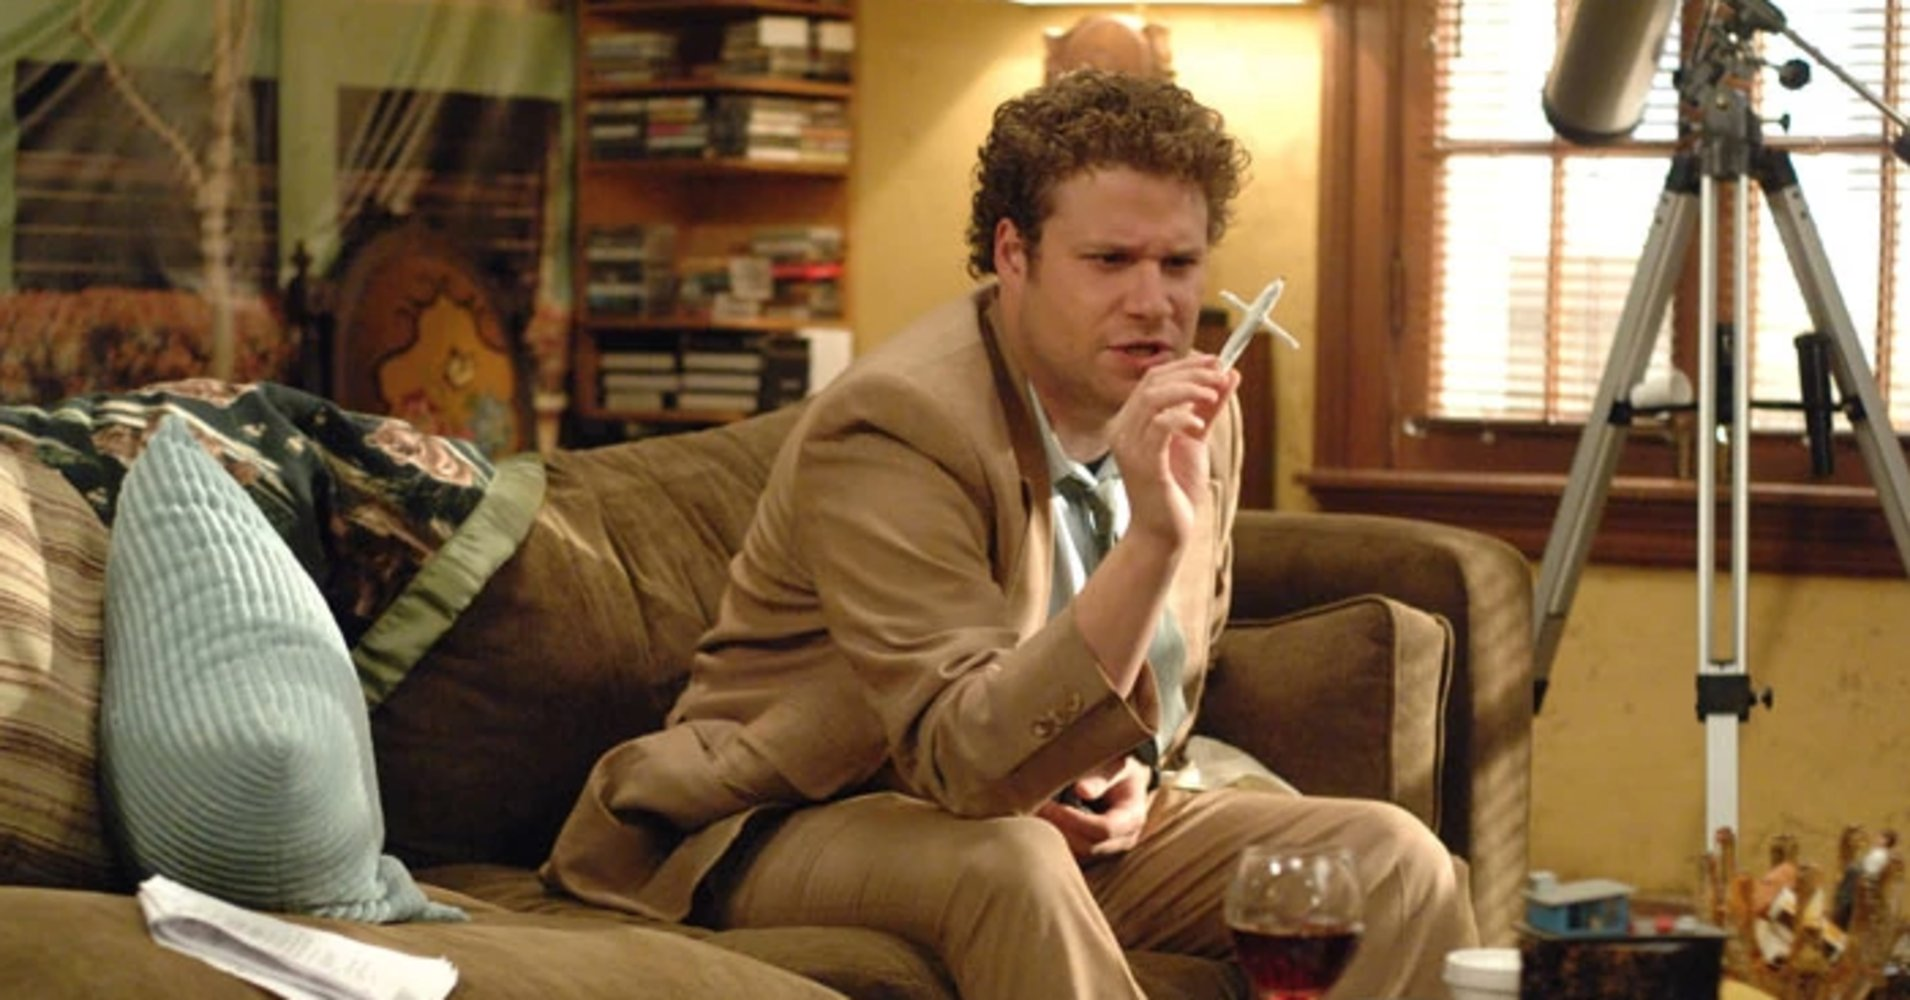 Seth Rogen launches weed company 'to make it easier for people to learn to love cannabis' - Weedguide search